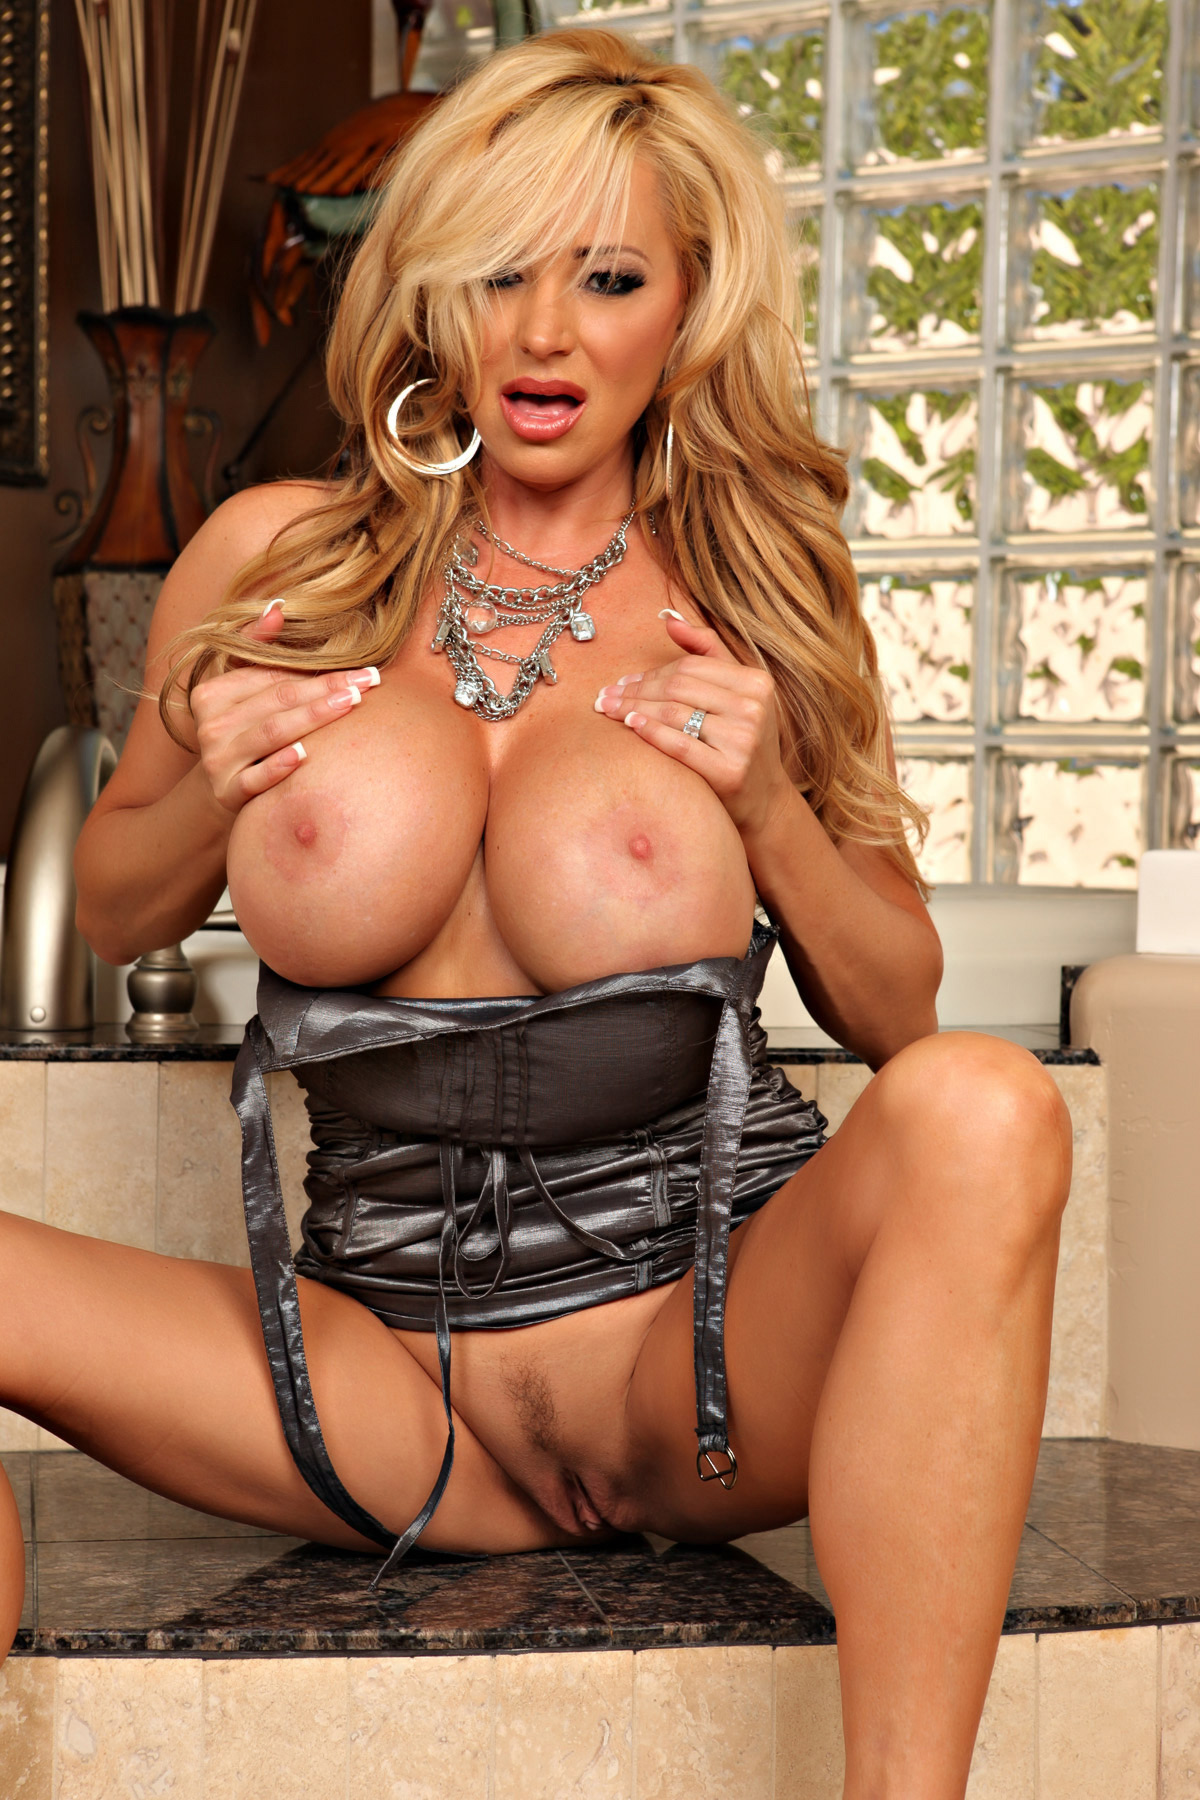 Your place rachel aziani big boobs thanks how